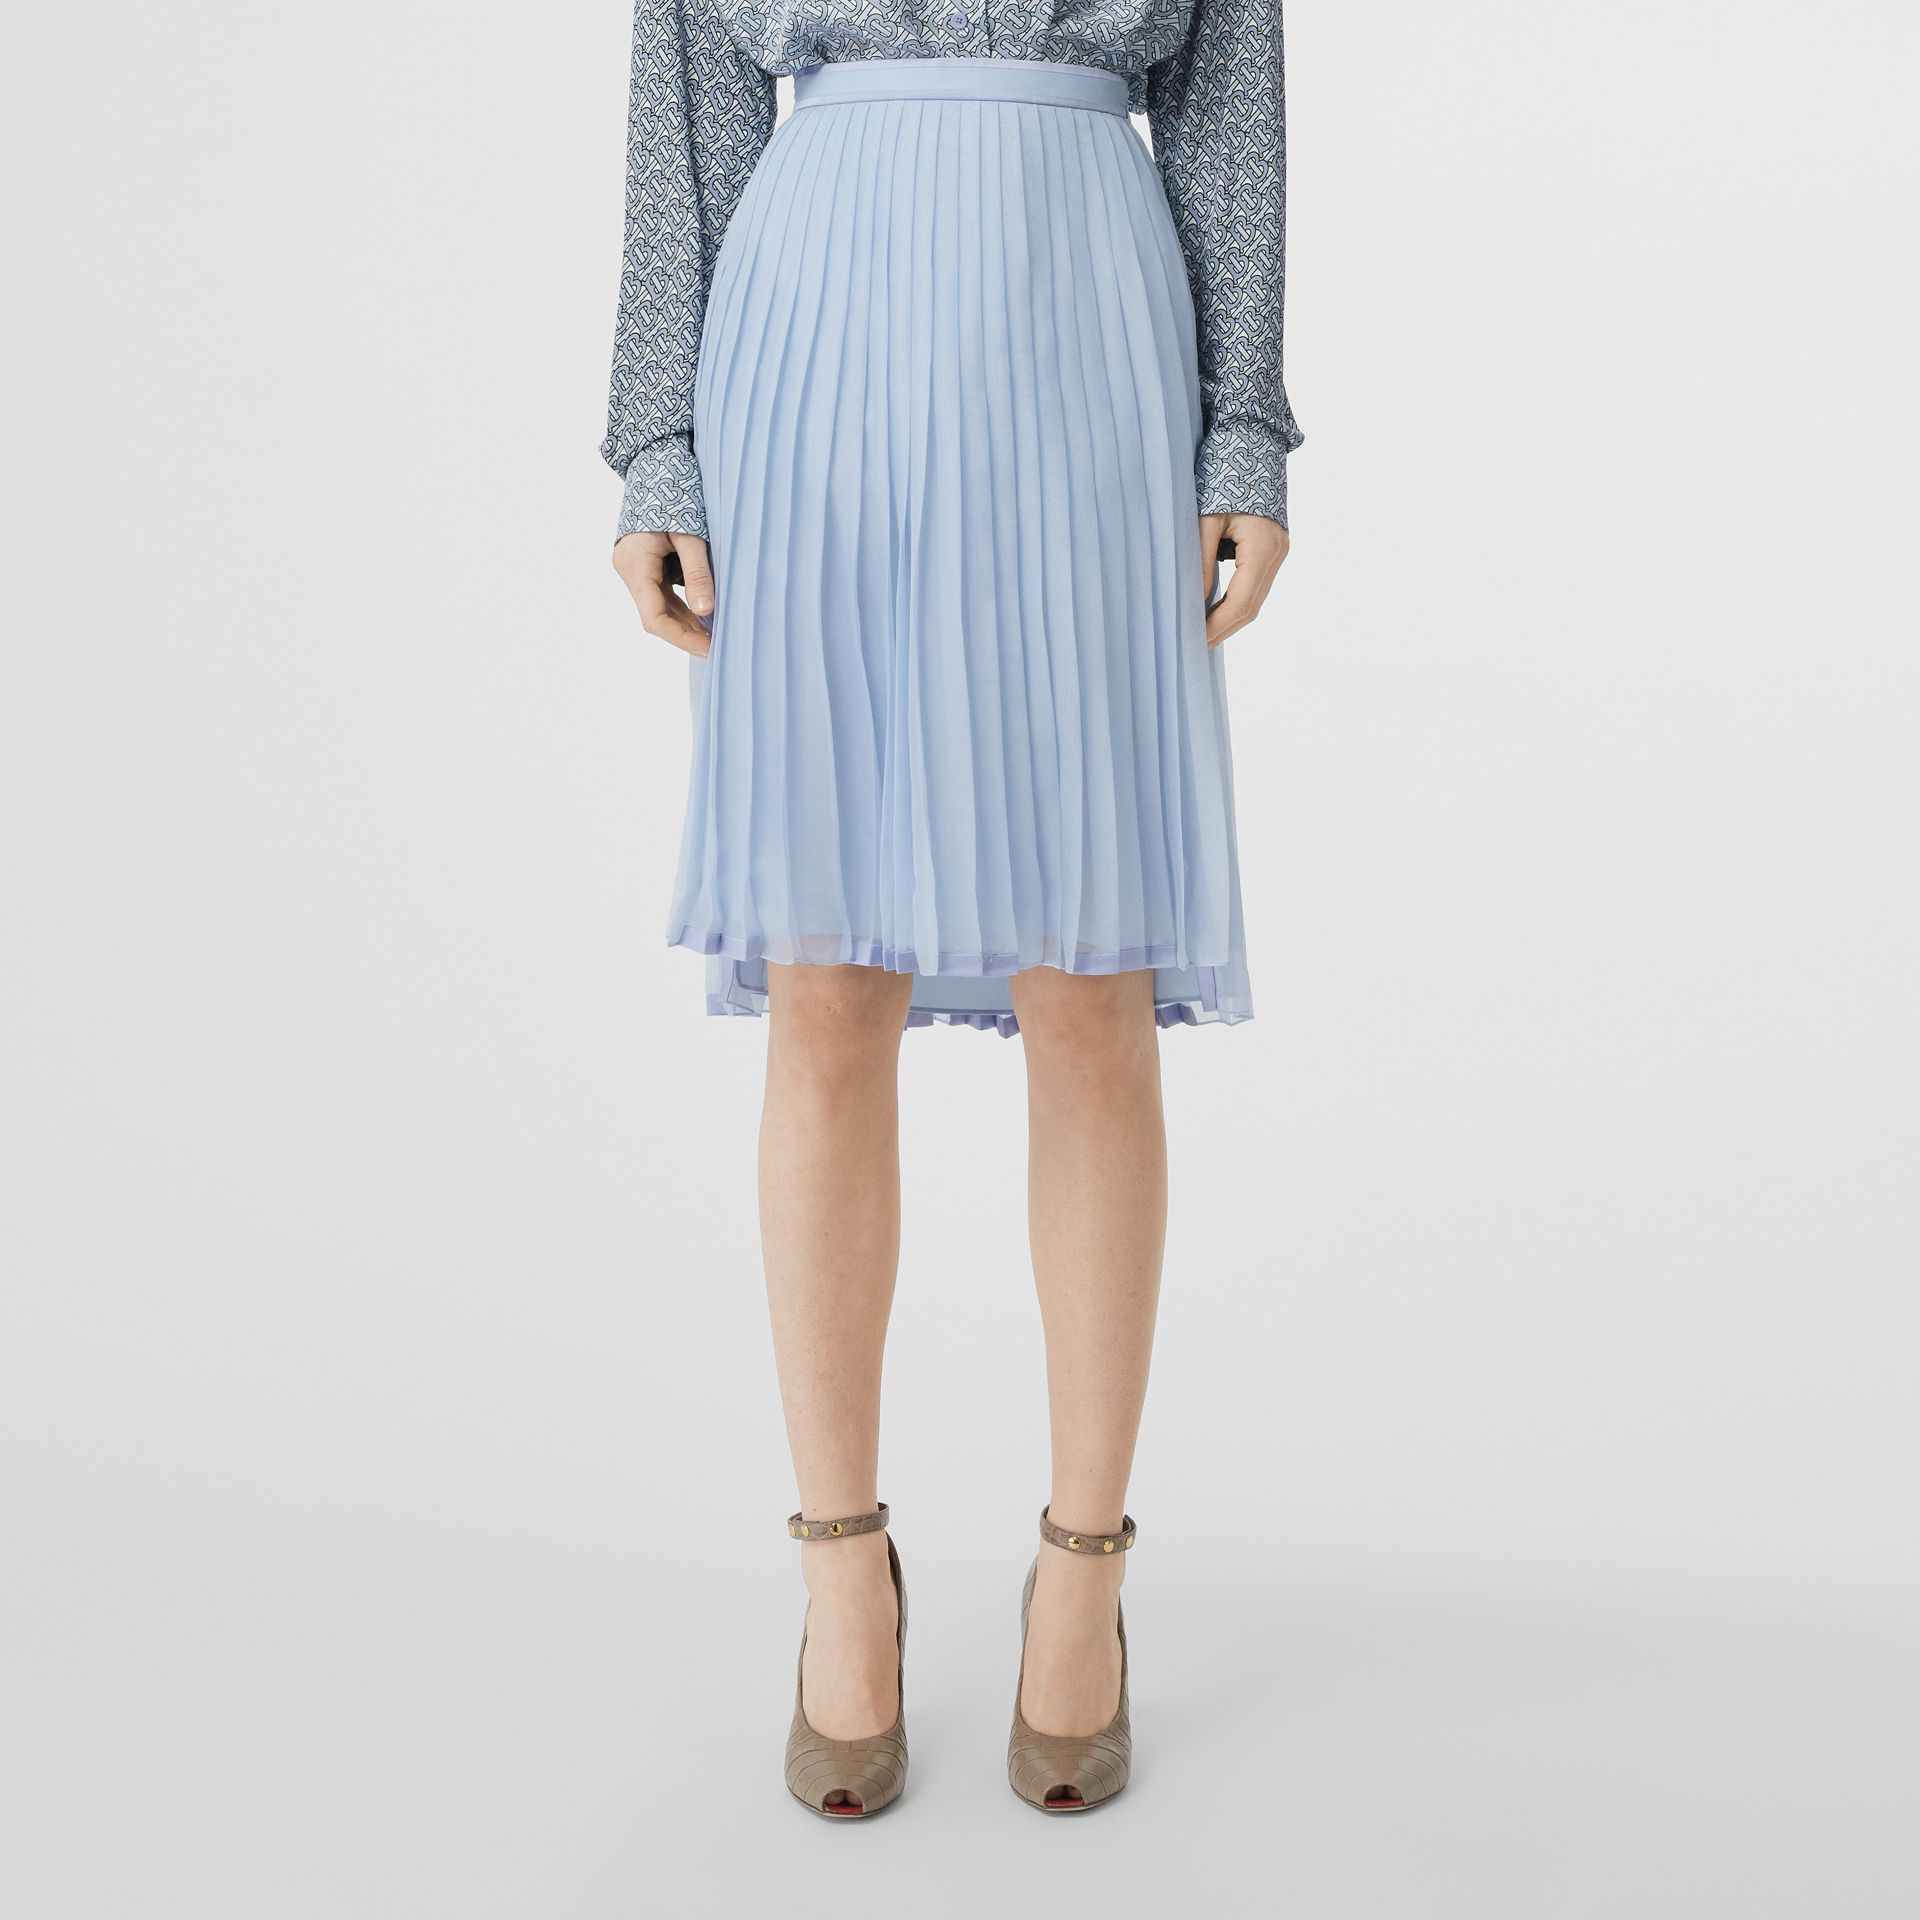 Contrast Trim Pleated Skirt in Pale Blue - Women | Burberry - gallery image 4